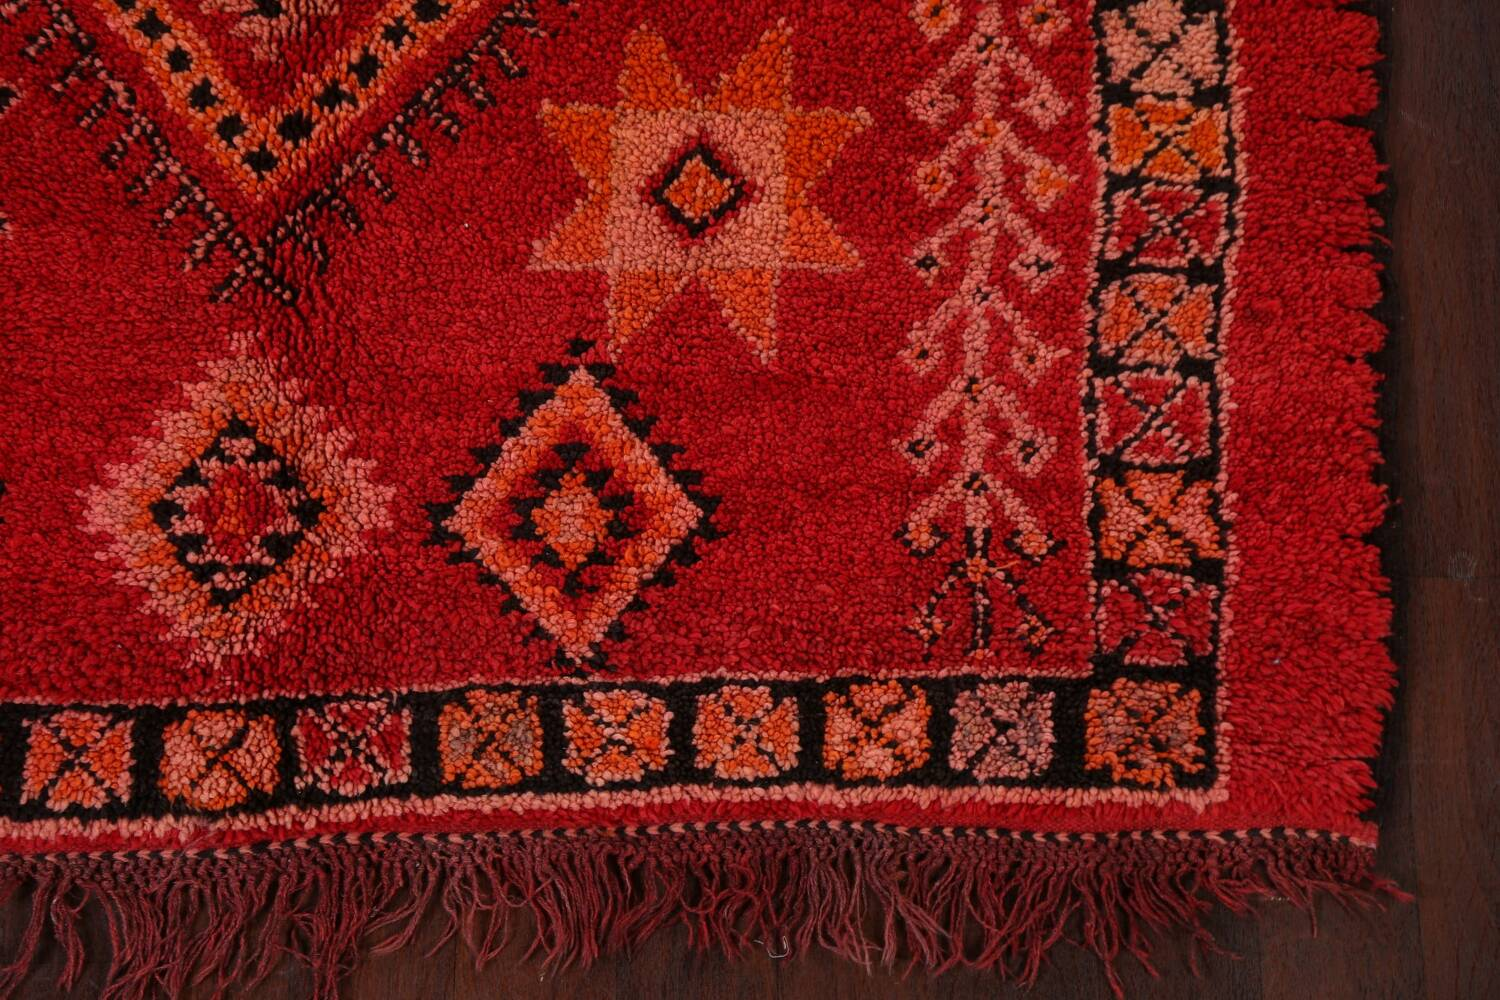 Red Moroccan Berber Area Rug 6x11 image 6